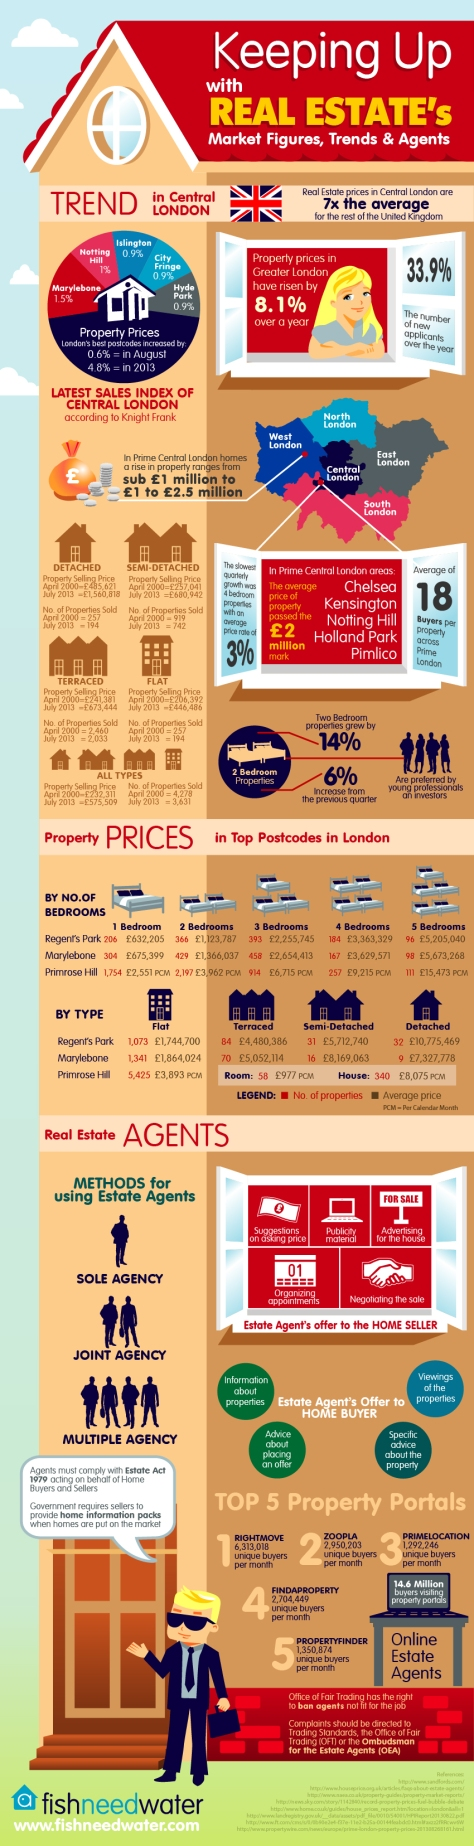 keeping-up-with-real-estates-market-figures-trends-and-agents_525e1e2a4a447